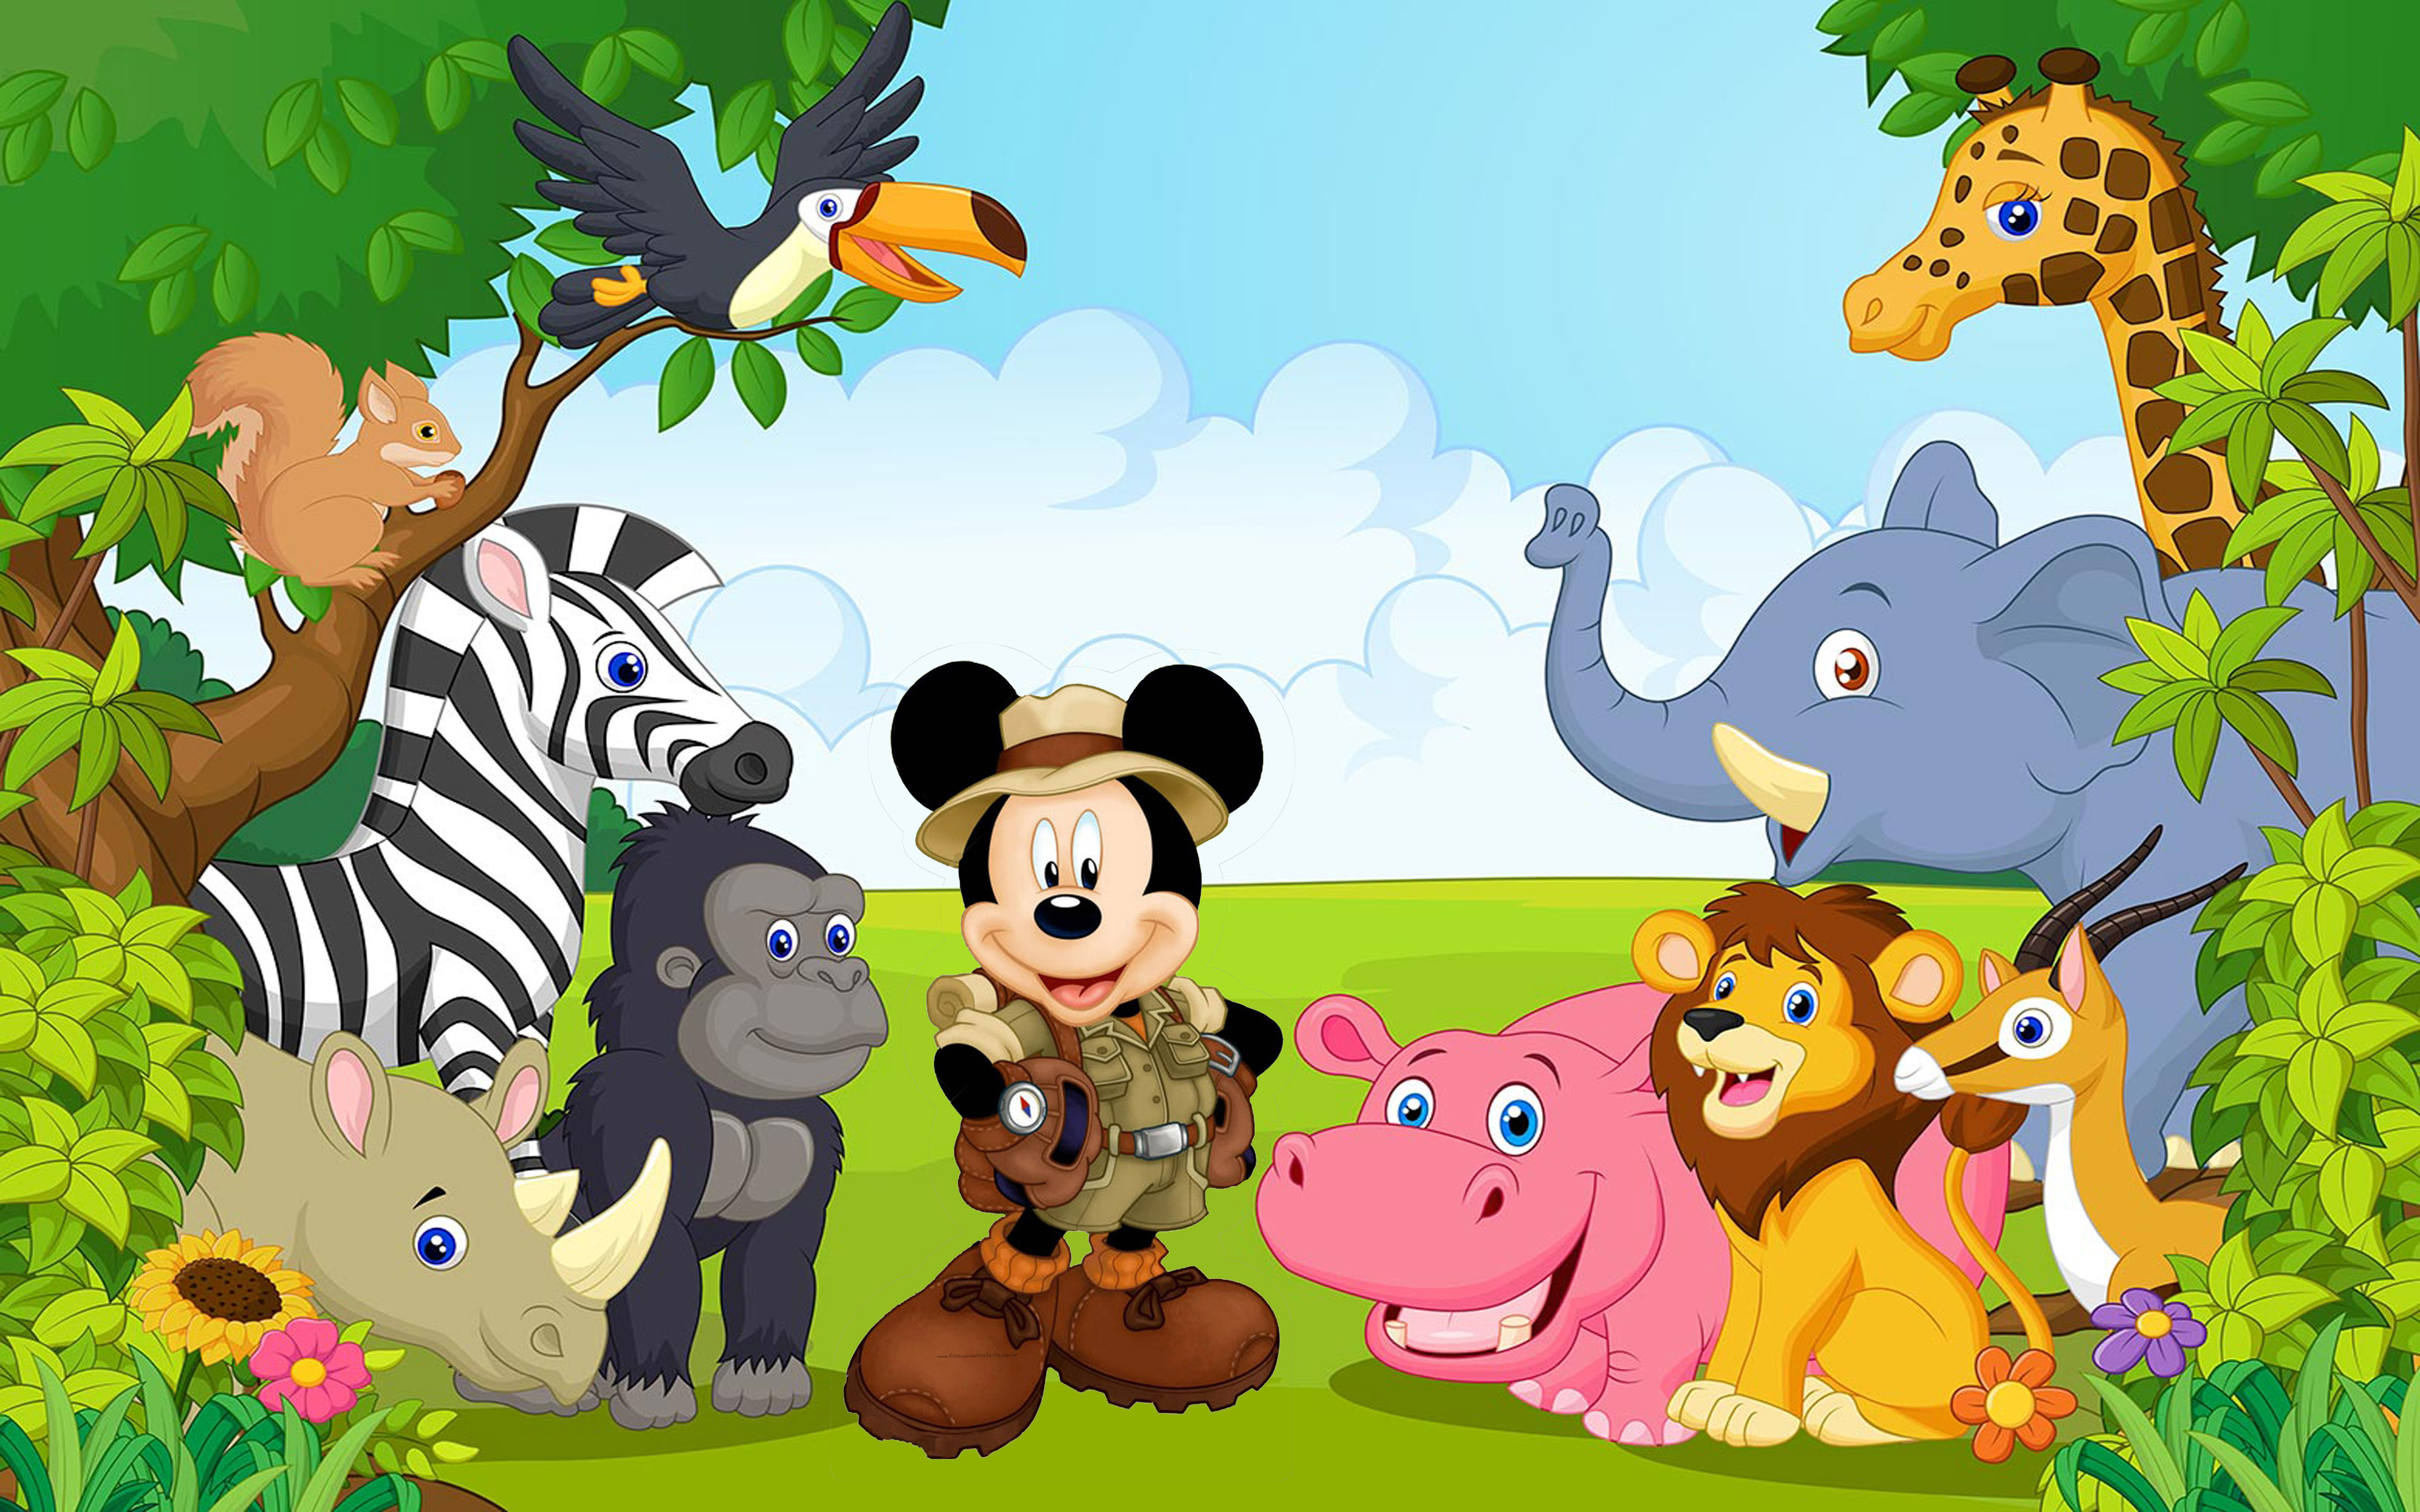 Free Hd Car Wallpaper Download For Pc Mickey Mouse With Friends From The Jungle Safari Cartoon